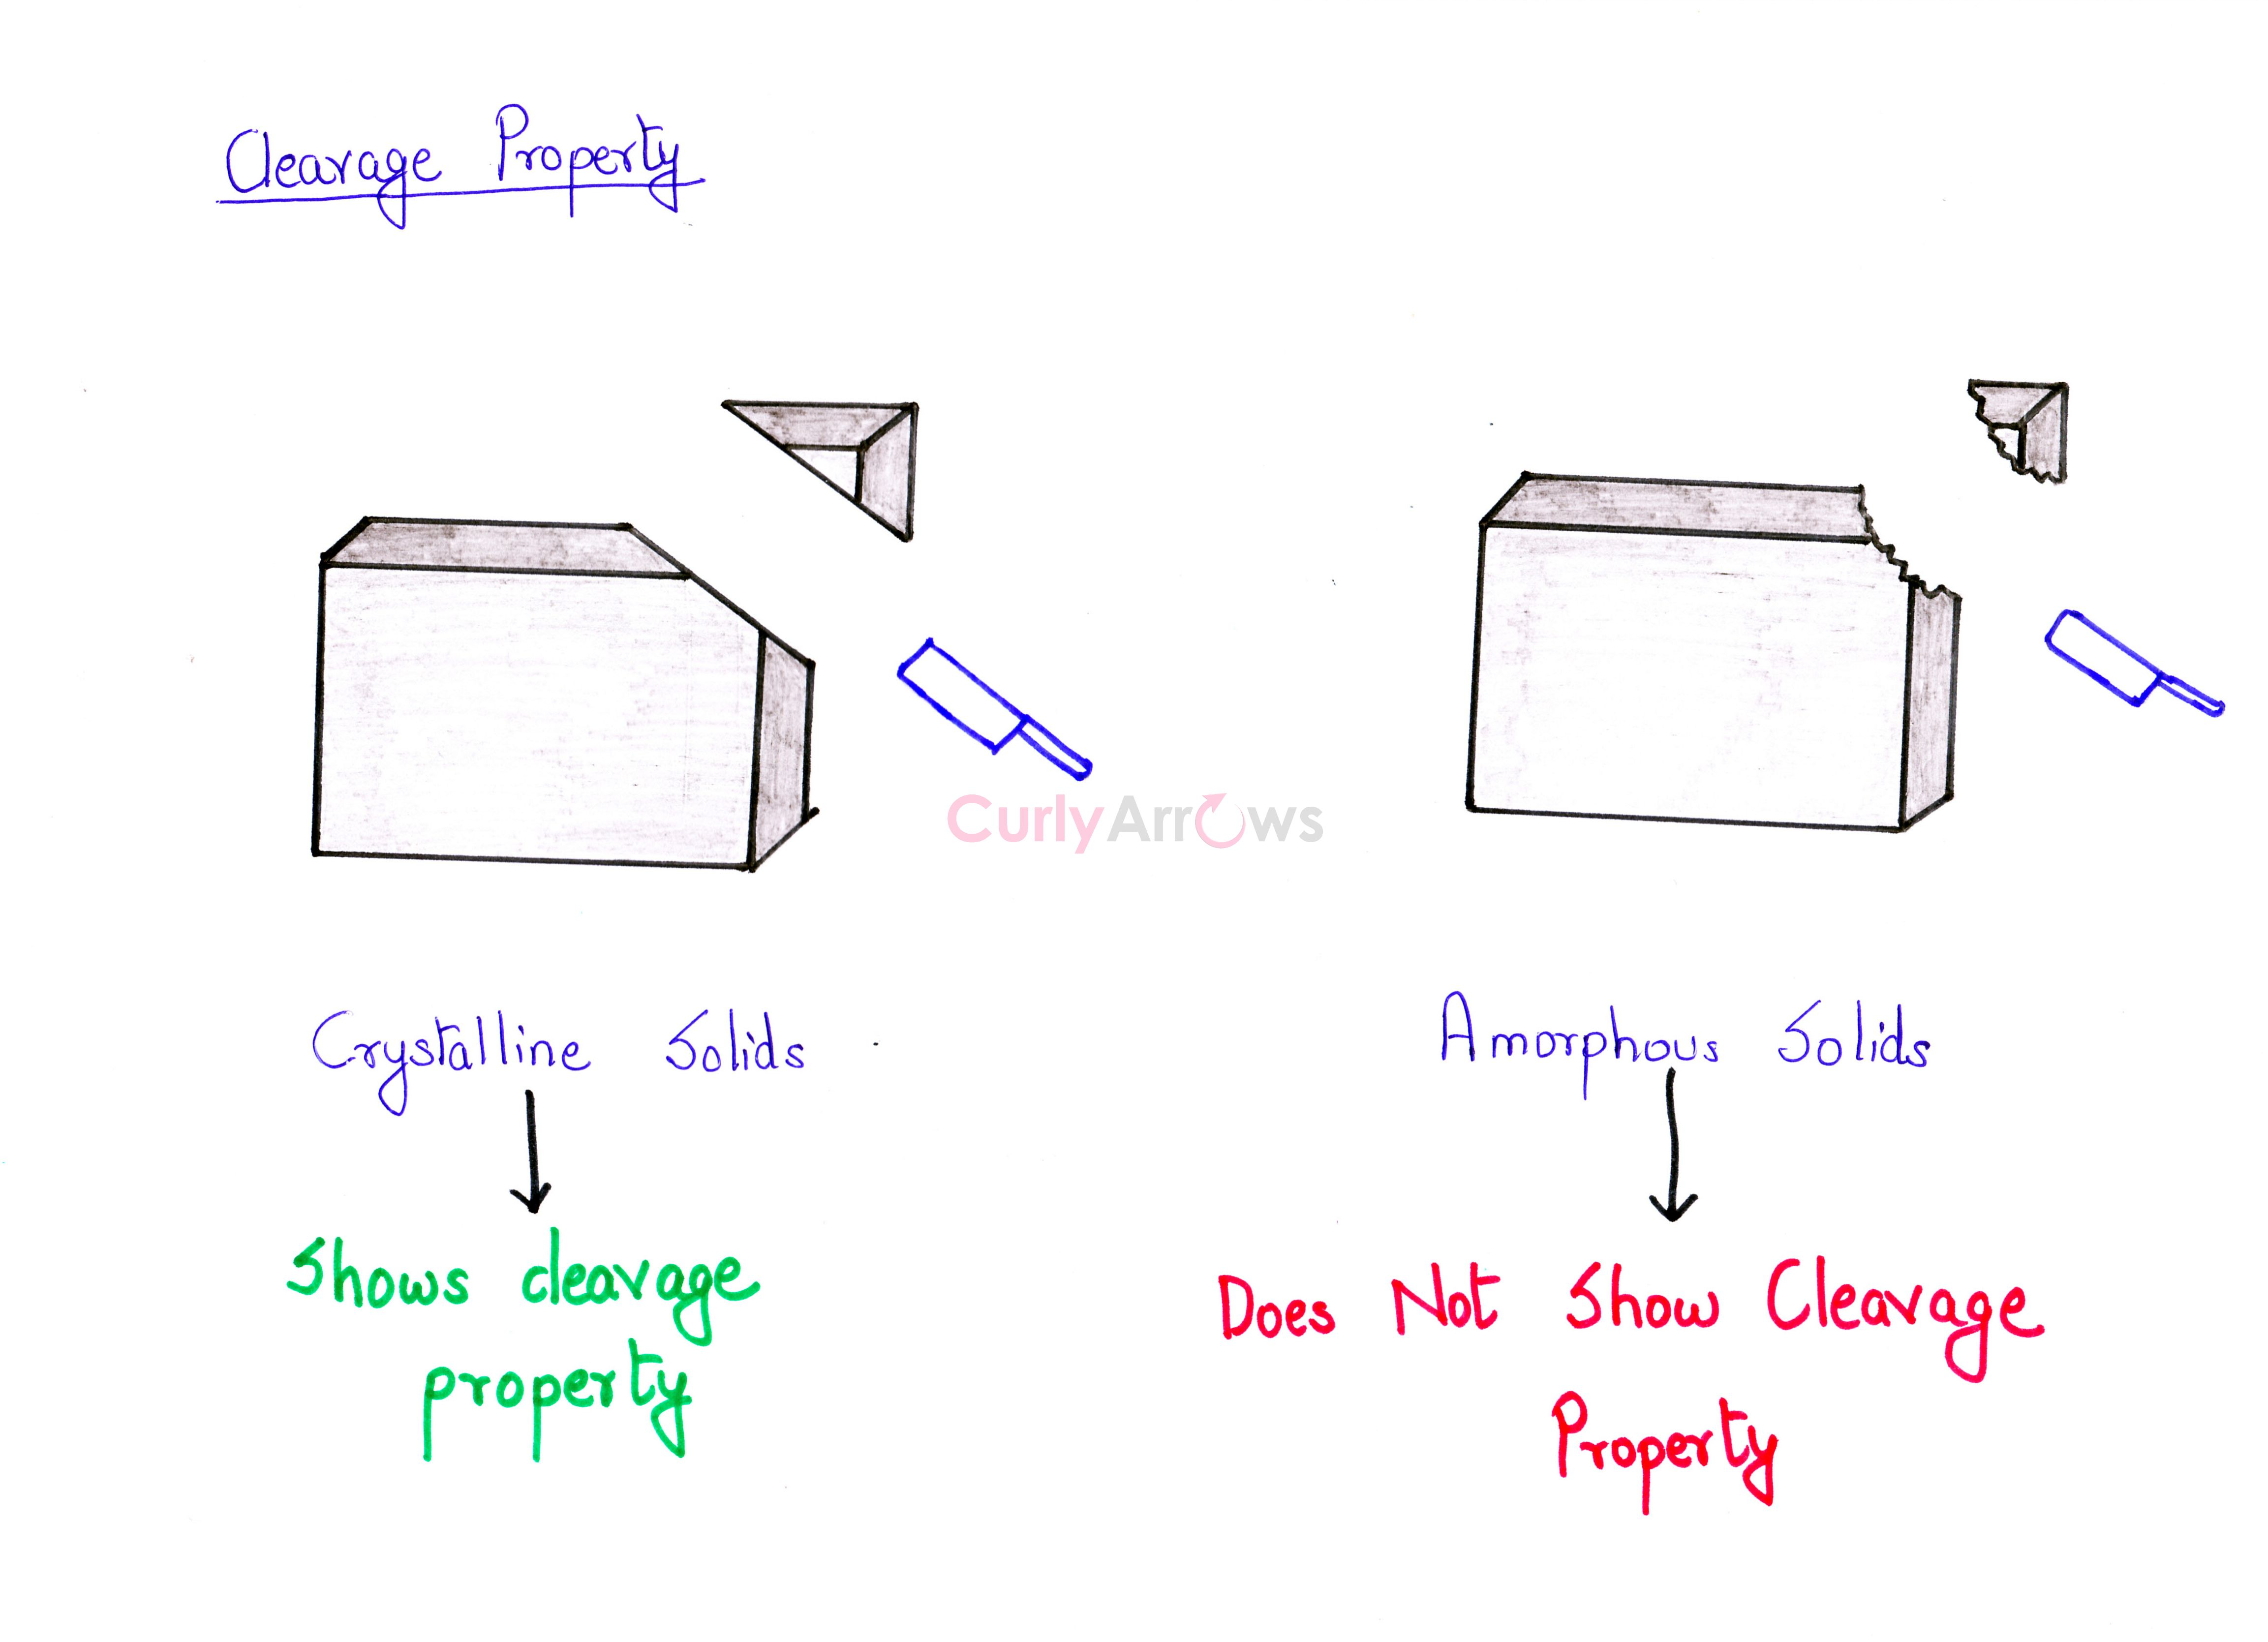 Cleavage Property Of Crystalline Solids If A Crystalline Solid Is